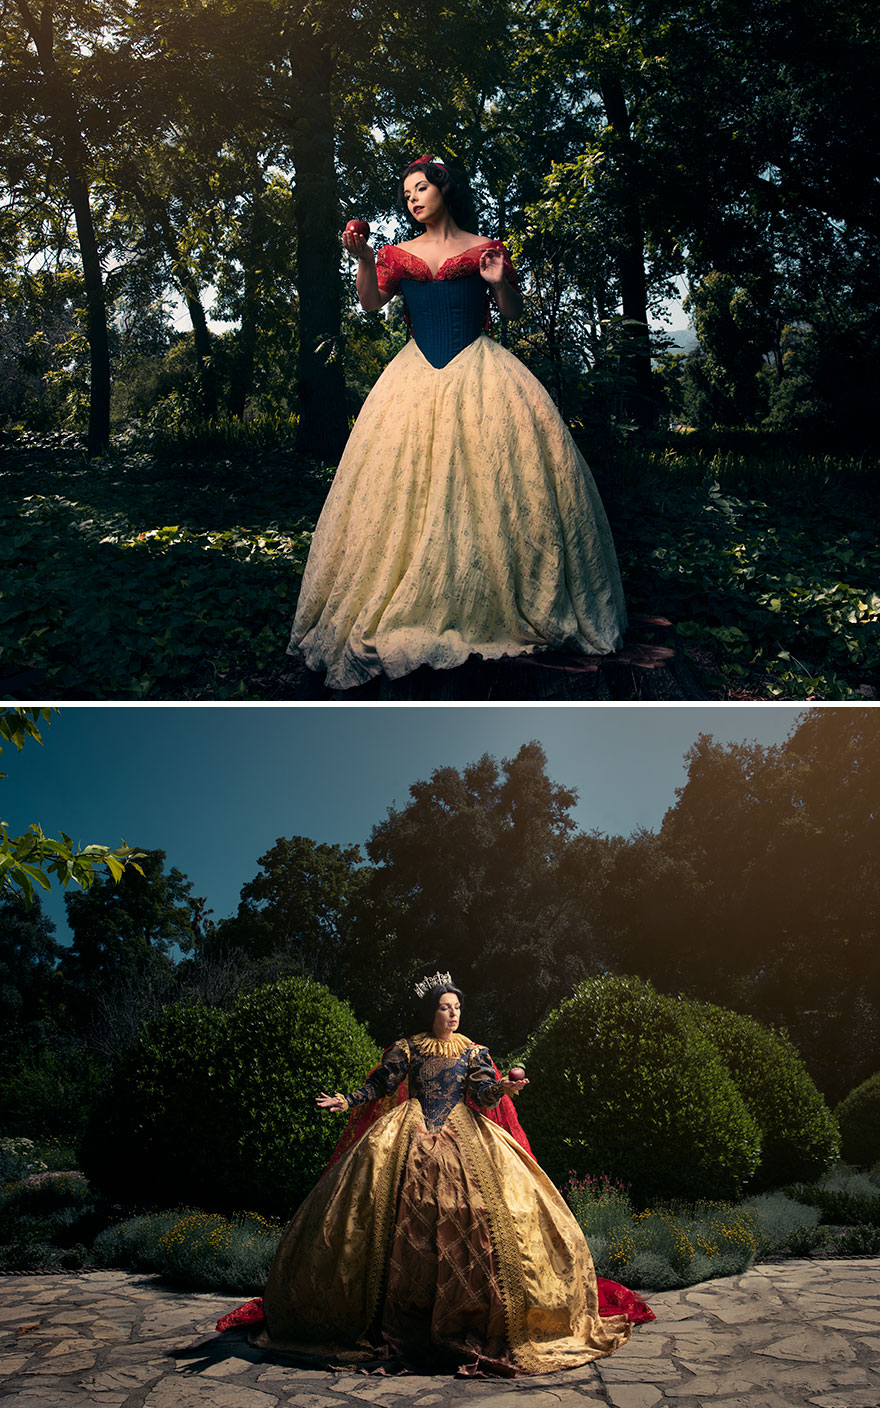 Snow White reimagined as queen